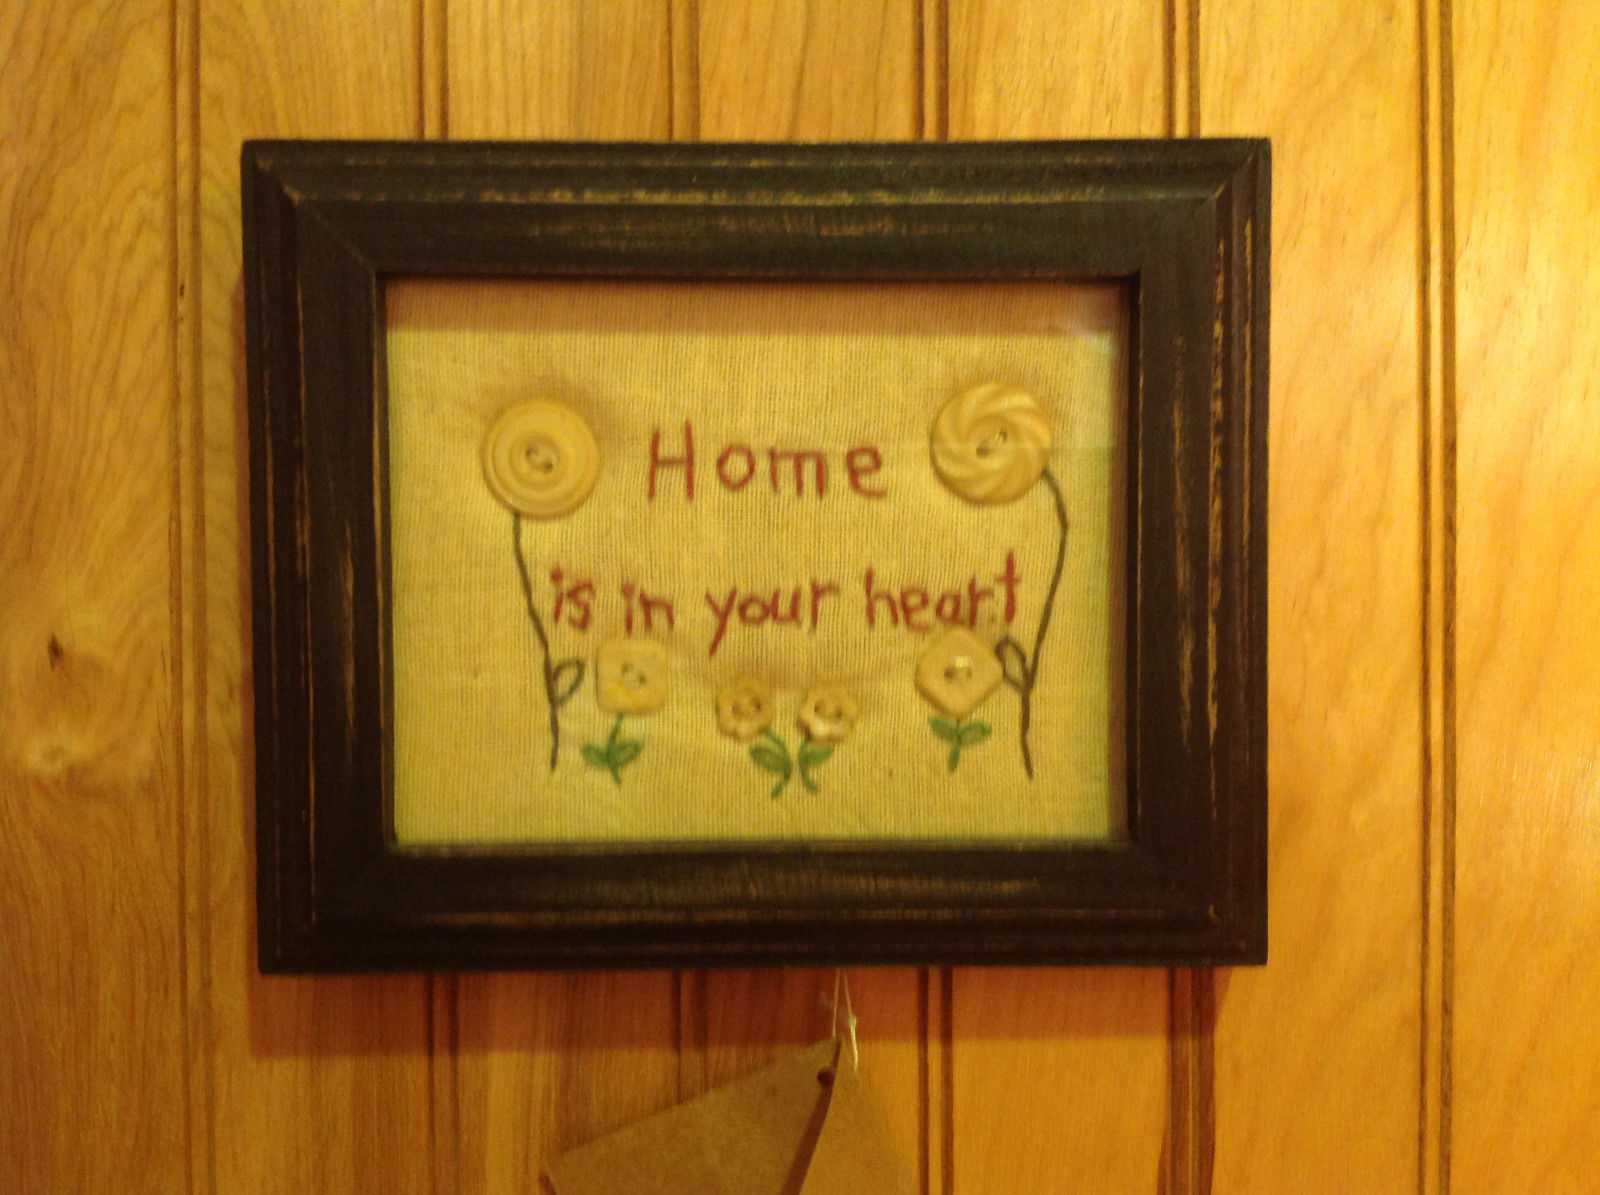 Stitched Home is in Your Heart by Lisa Johnson Framed New with Tag